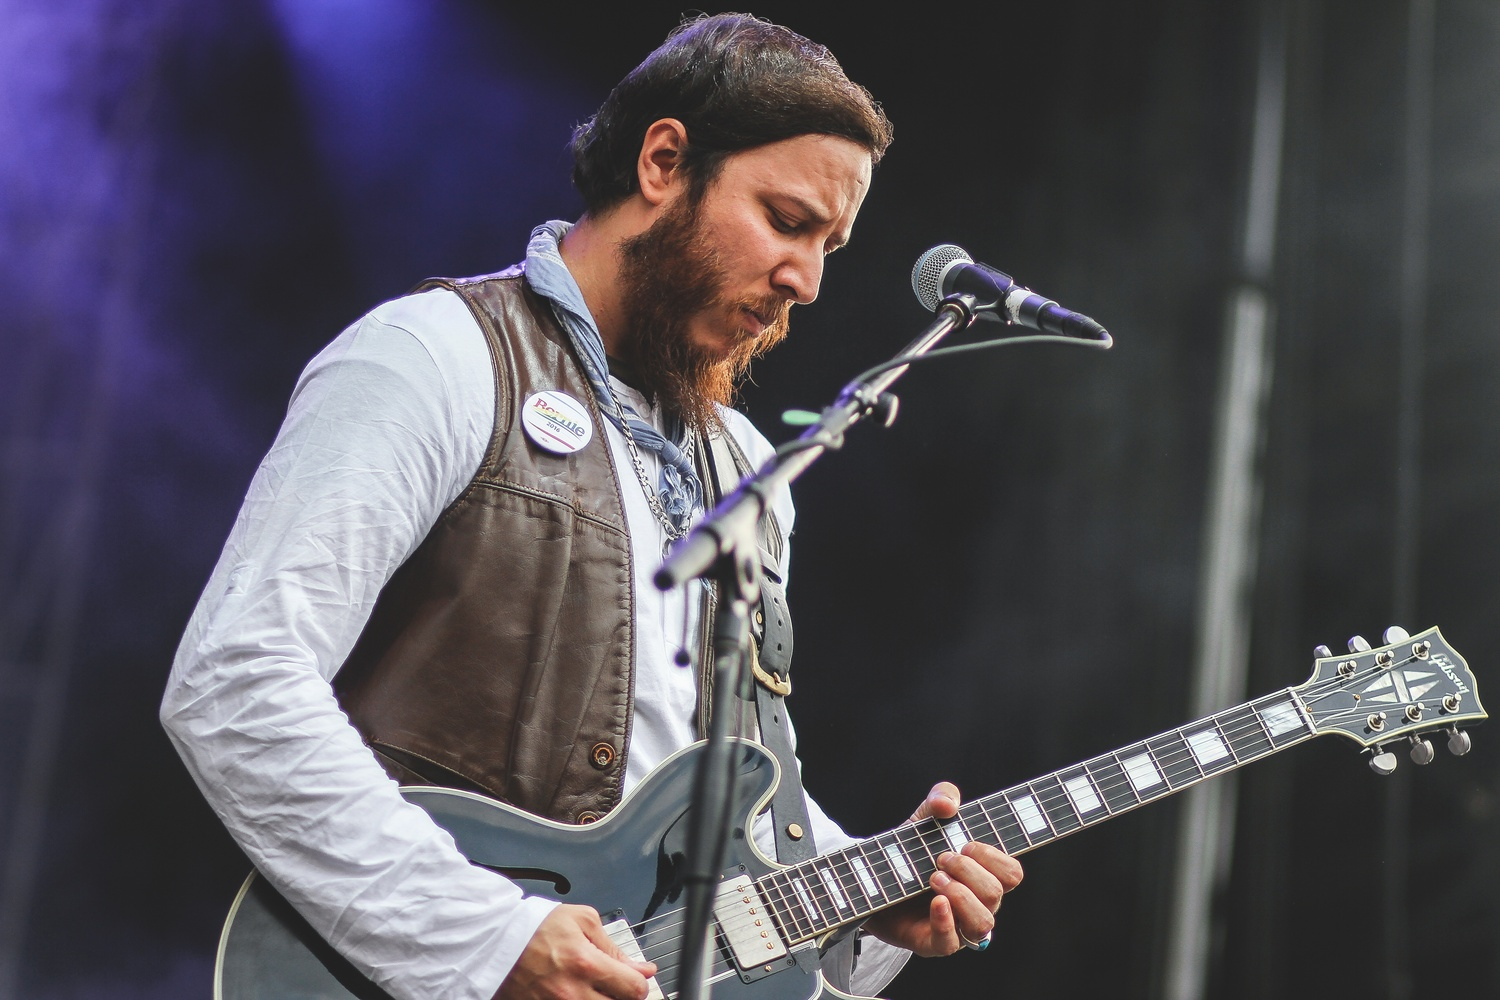 City and Colour – Boston Calling Spring 2016